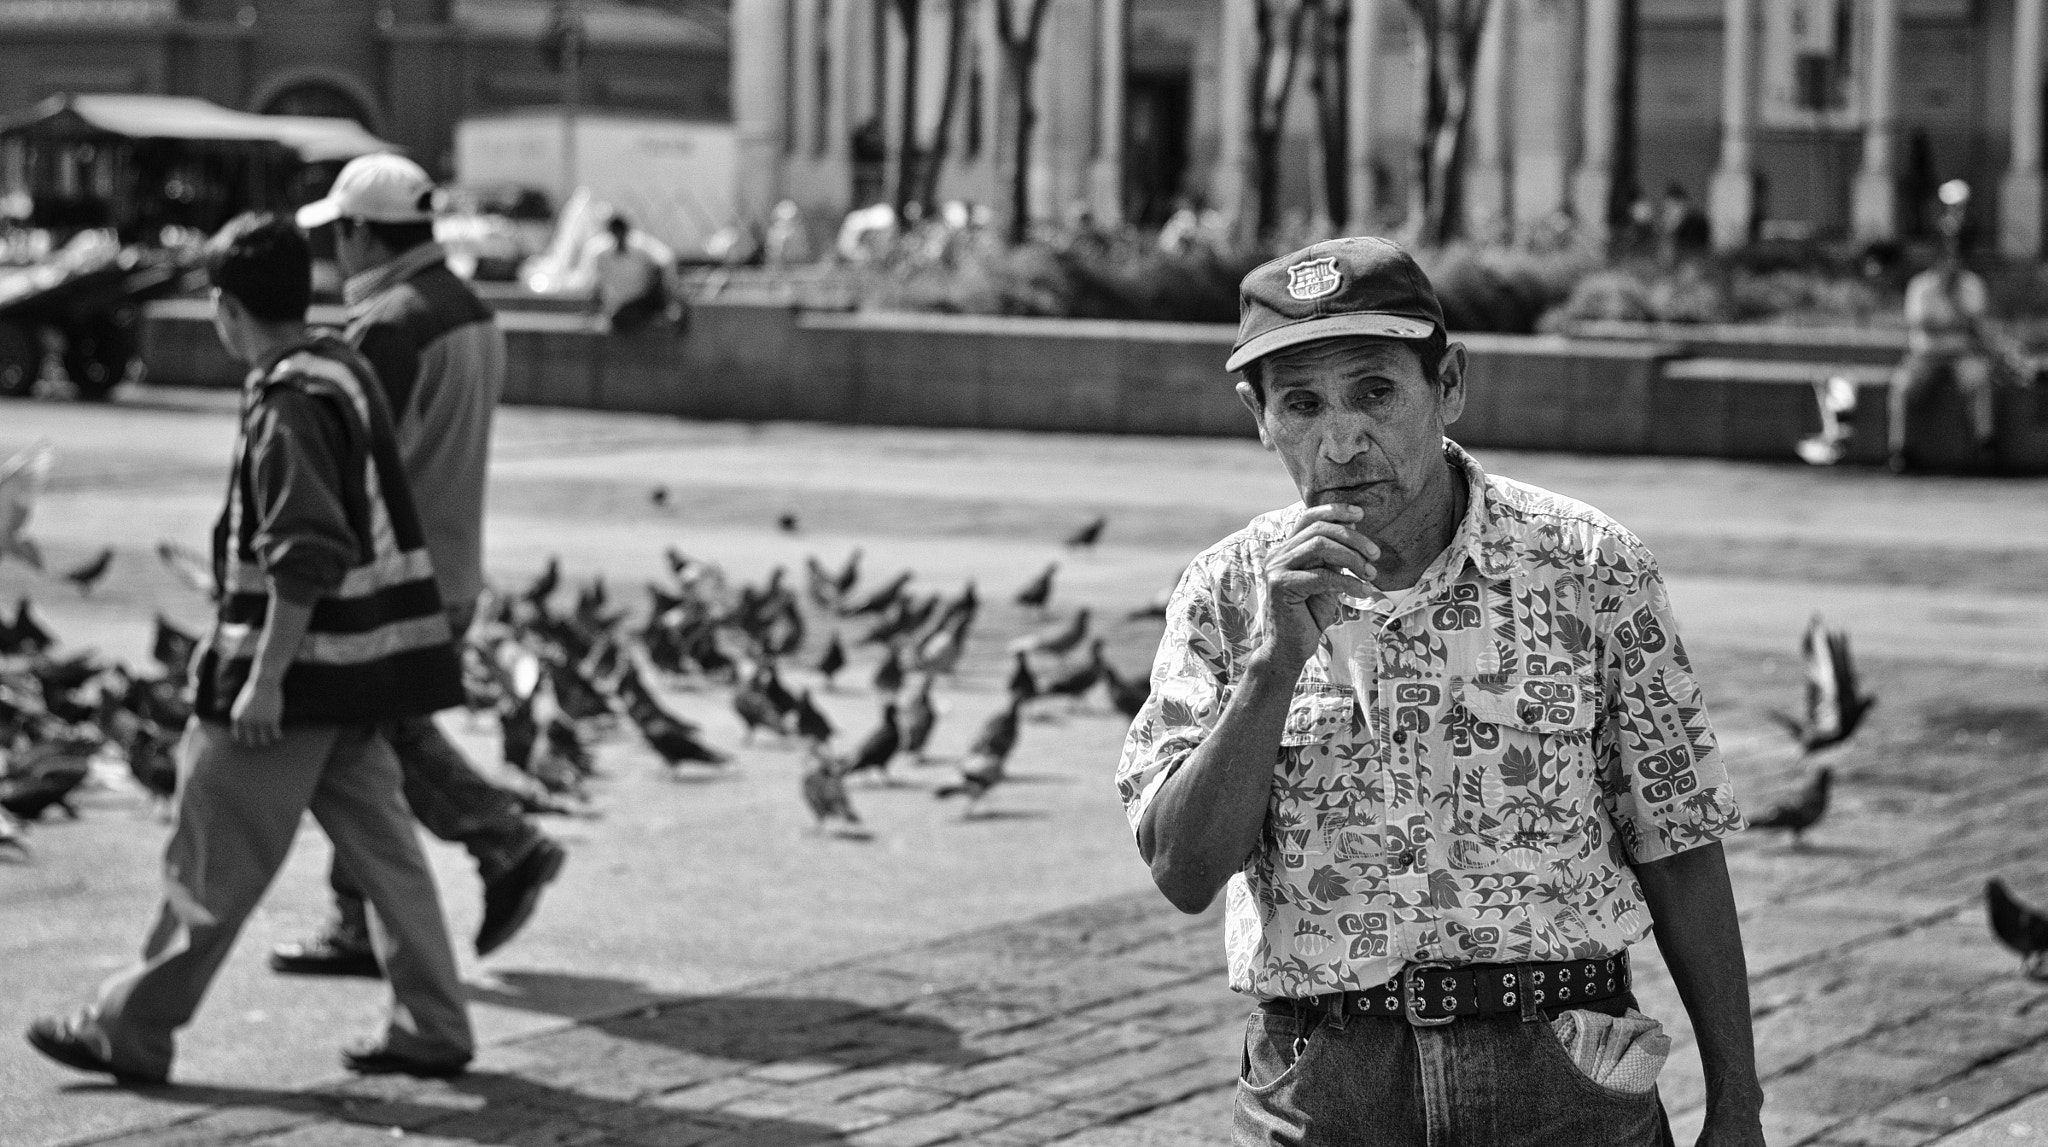 Photograph The thinker by Pedro Santiago on 500px